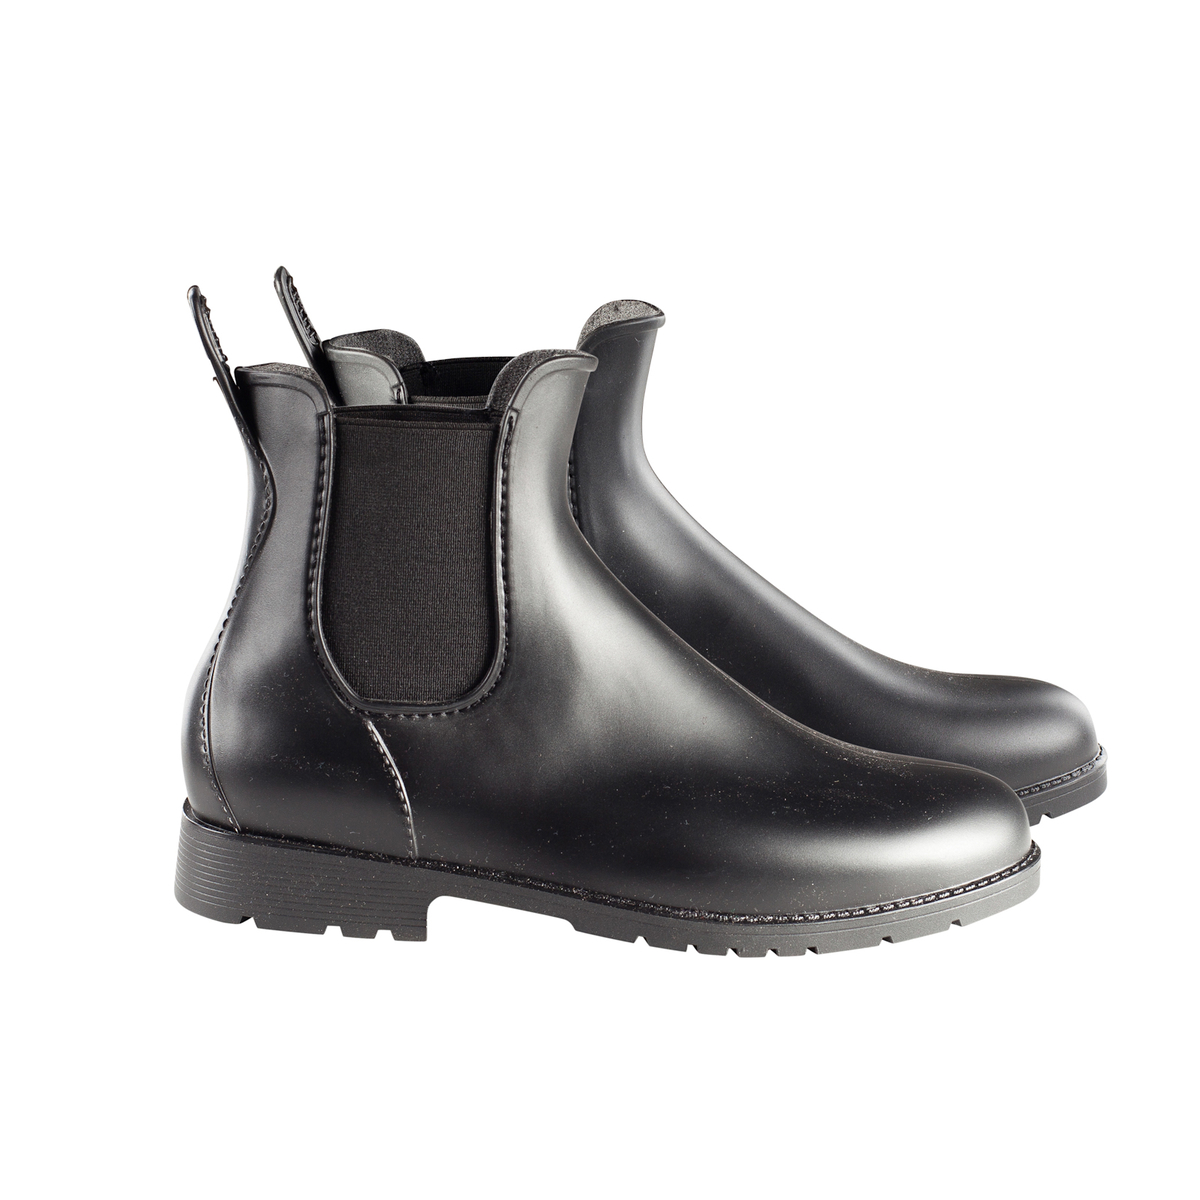 Find great deals on eBay for mens jodhpur riding boots. Shop with confidence. Skip to main content. eBay: Shop by category. Shop by category. Enter your search keyword Shires Mens Rubber Long Riding Jodhpur Boots Shoes Pull On. Brand New. $ From United Kingdom. Buy It Now +$ shipping. 3+ Watching.